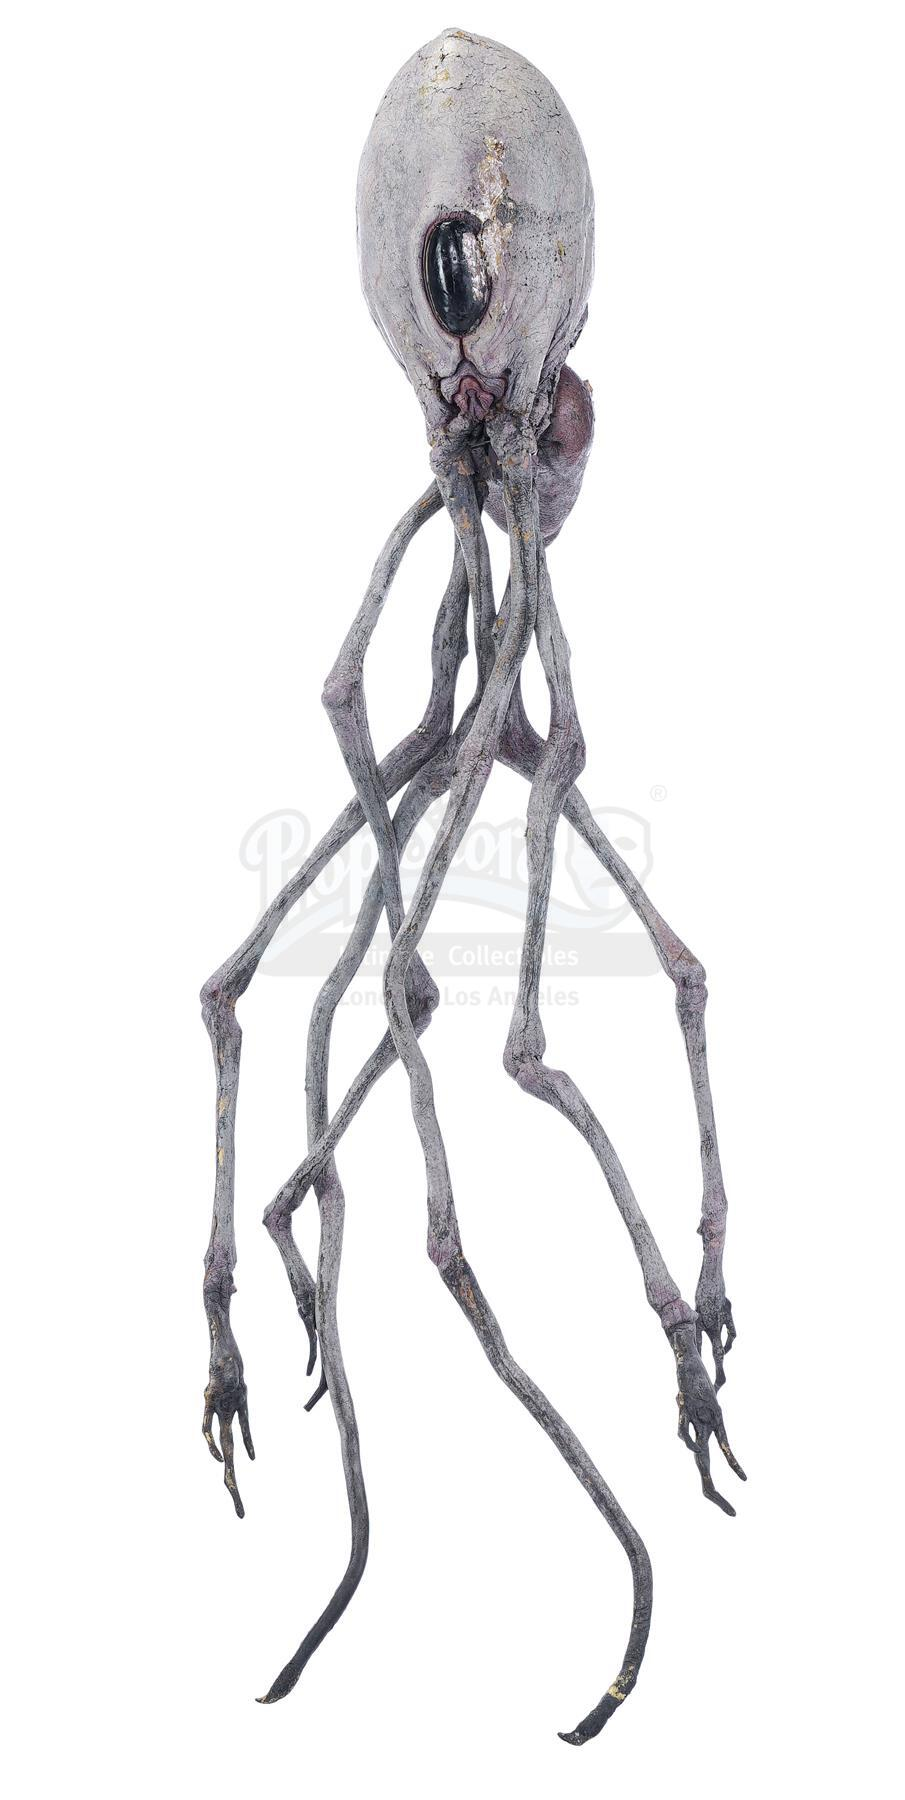 Lot # 1288: THE THING - Tentacled Thing Design Maquette